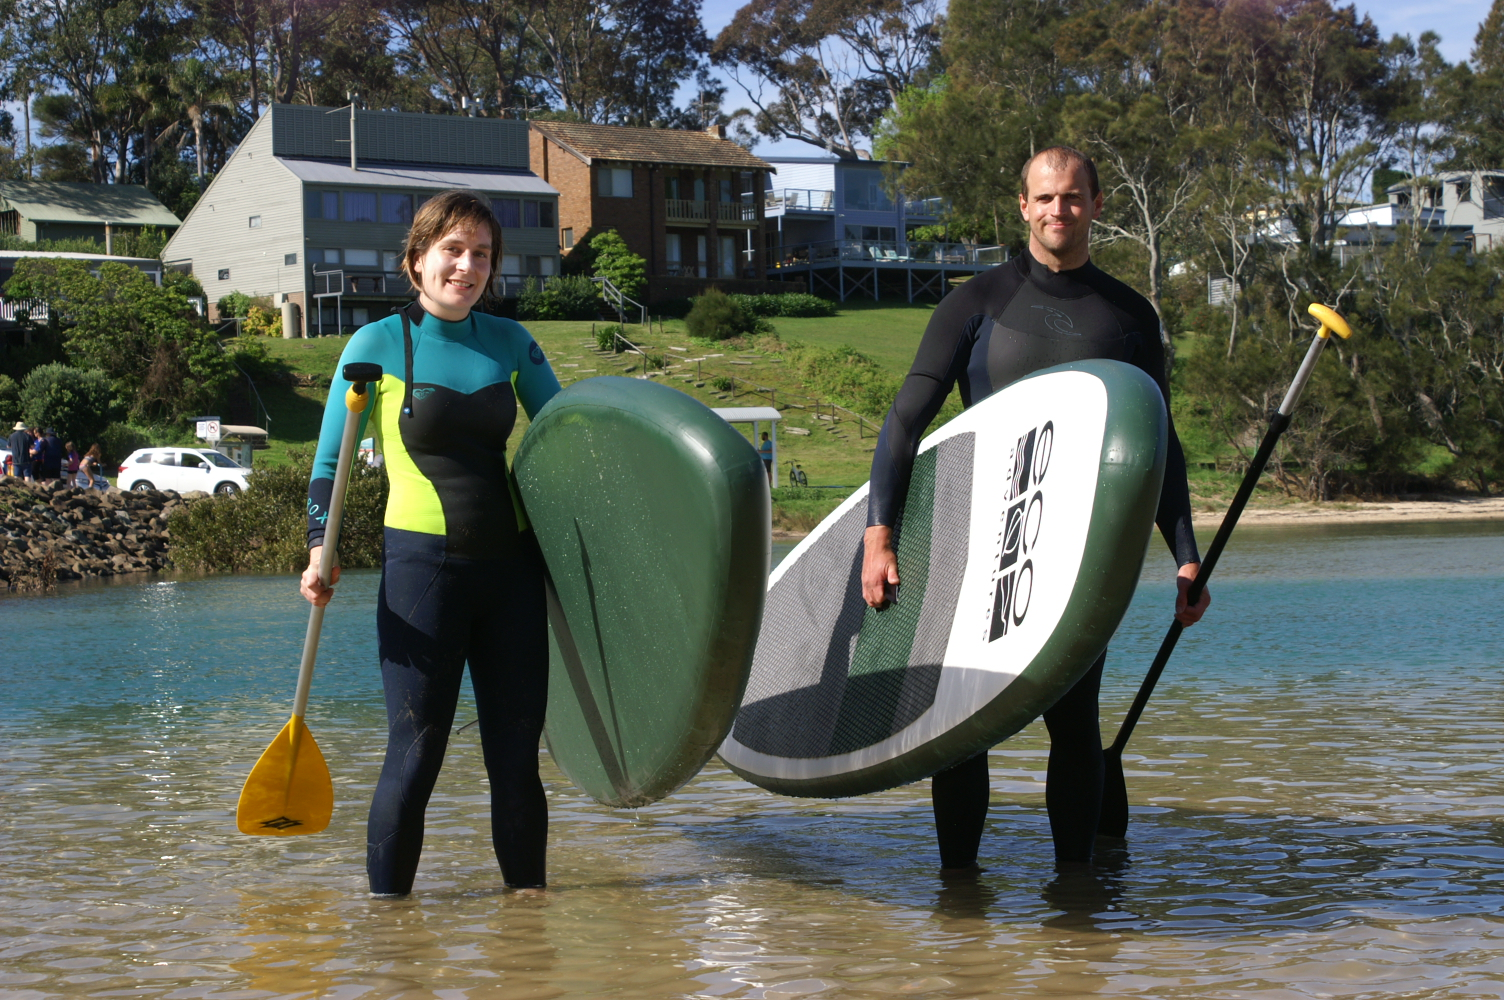 stand up paddle equipment for hire